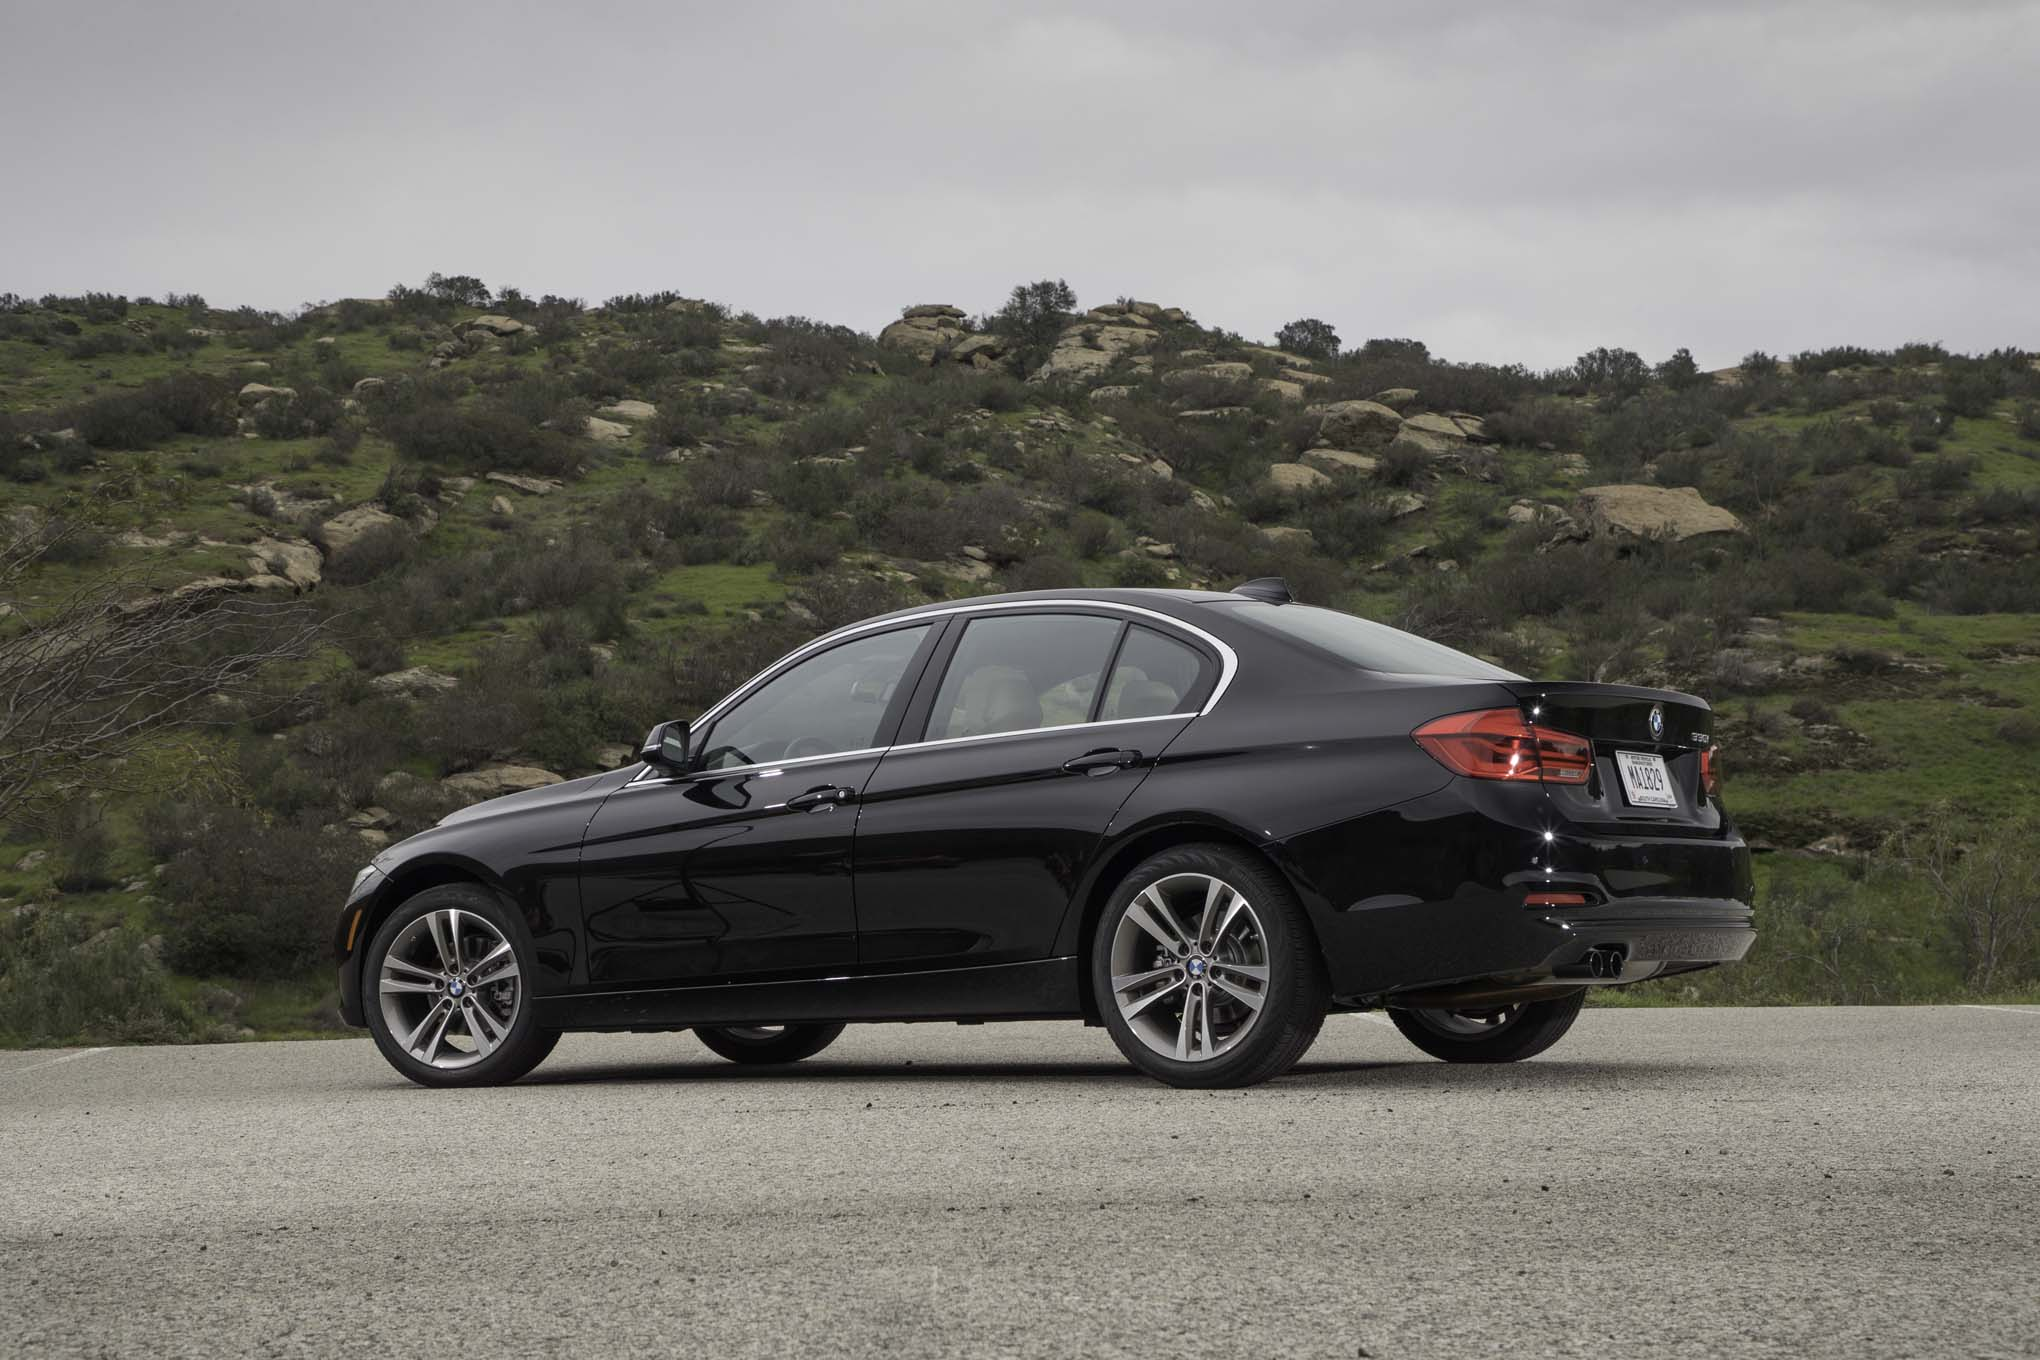 2017 BMW 330i Sedan Exterior Side And Rear (View 40 of 59)